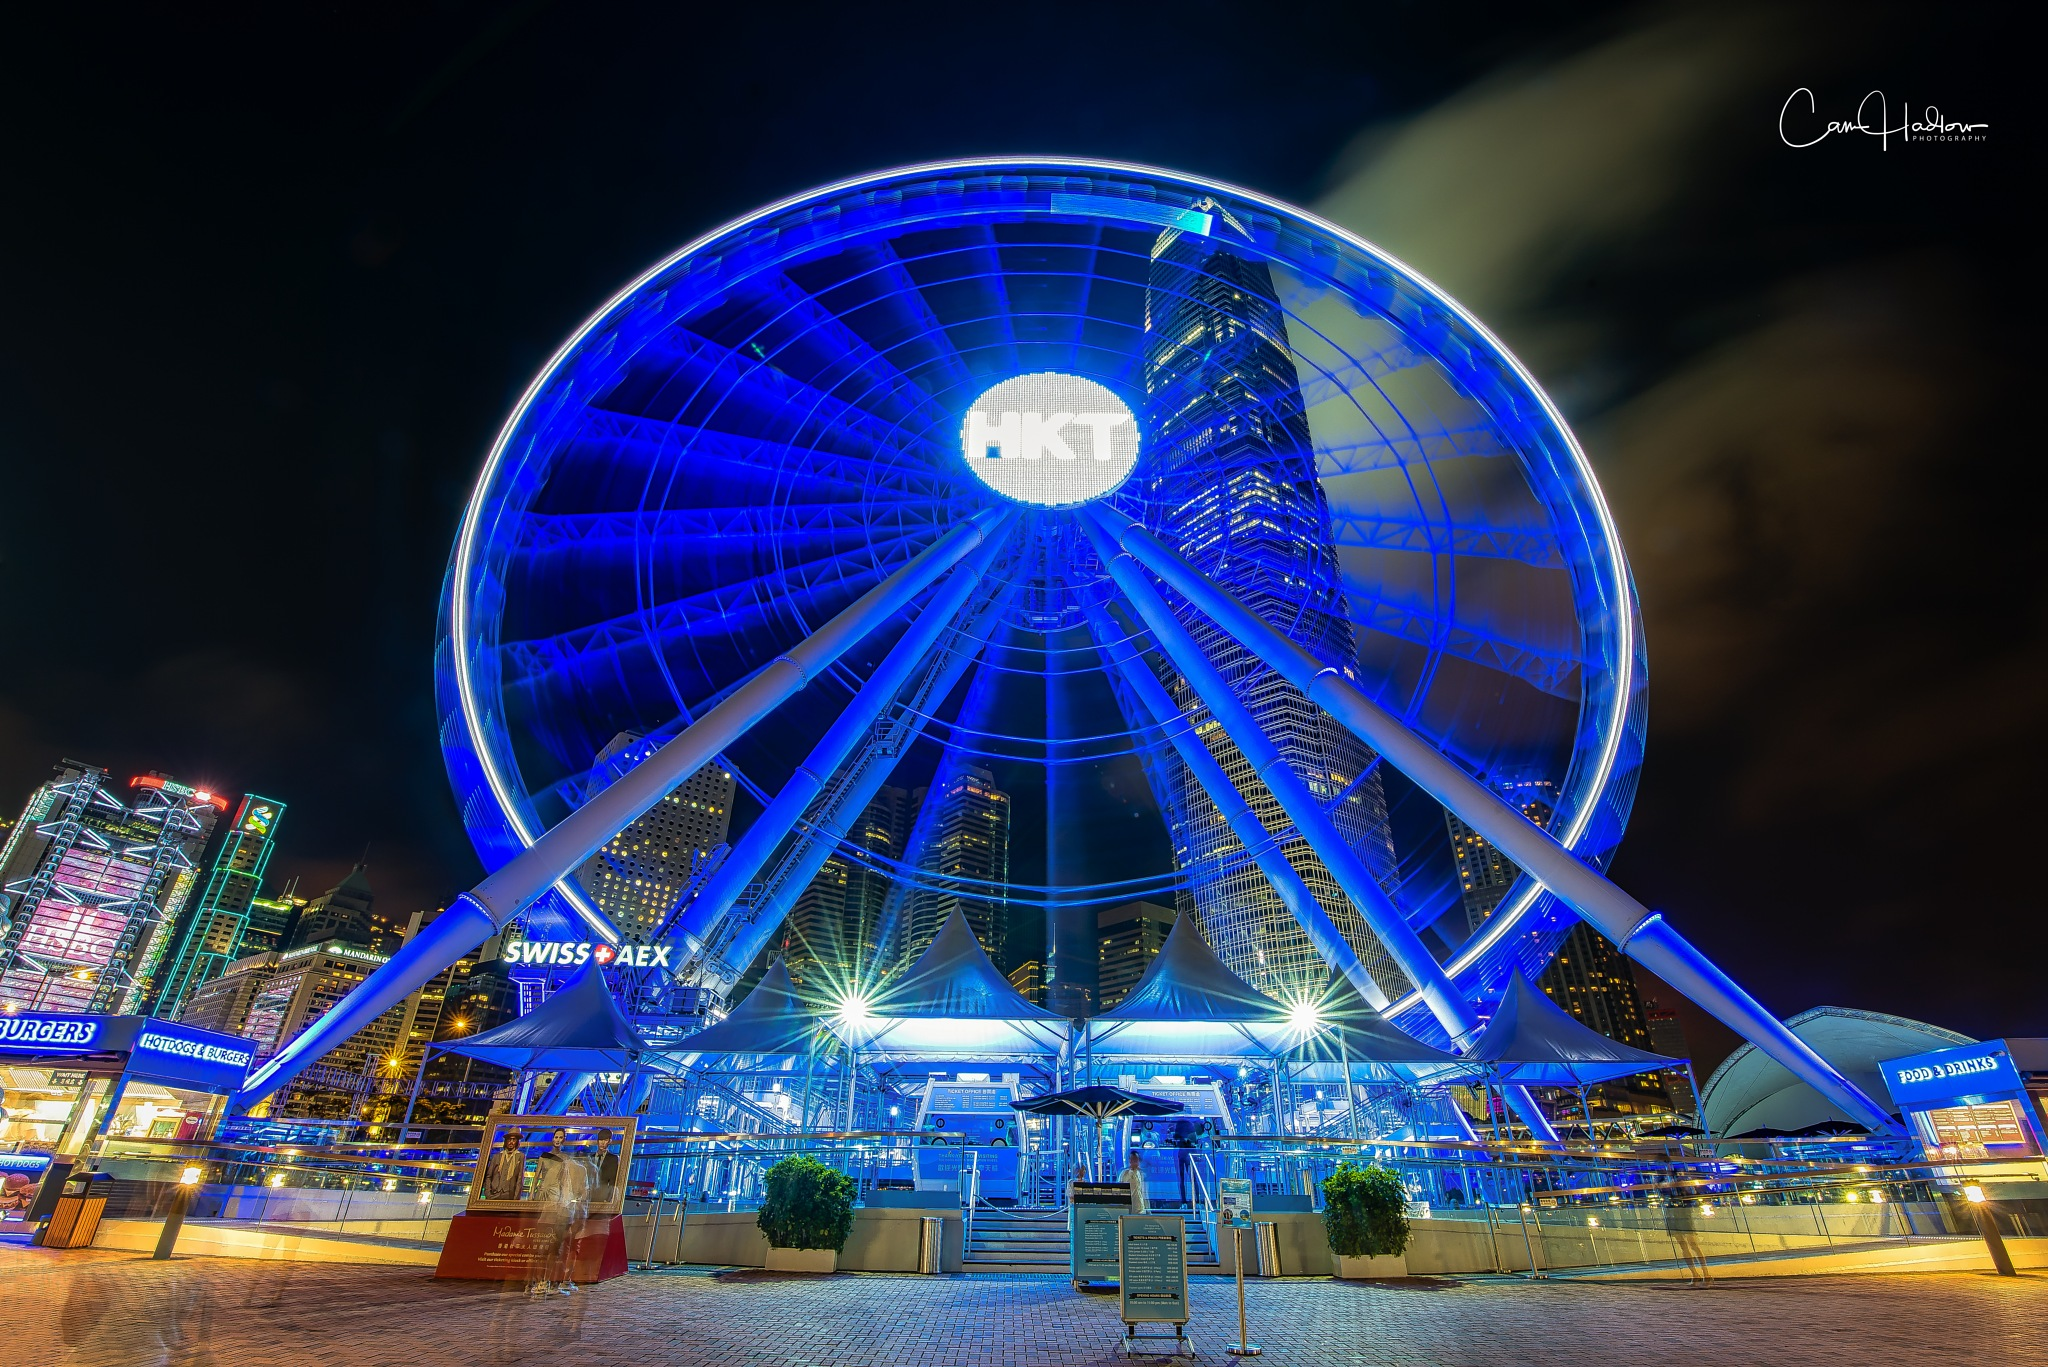 Hong Kong Observation Wheel by CamHadlowPhotography